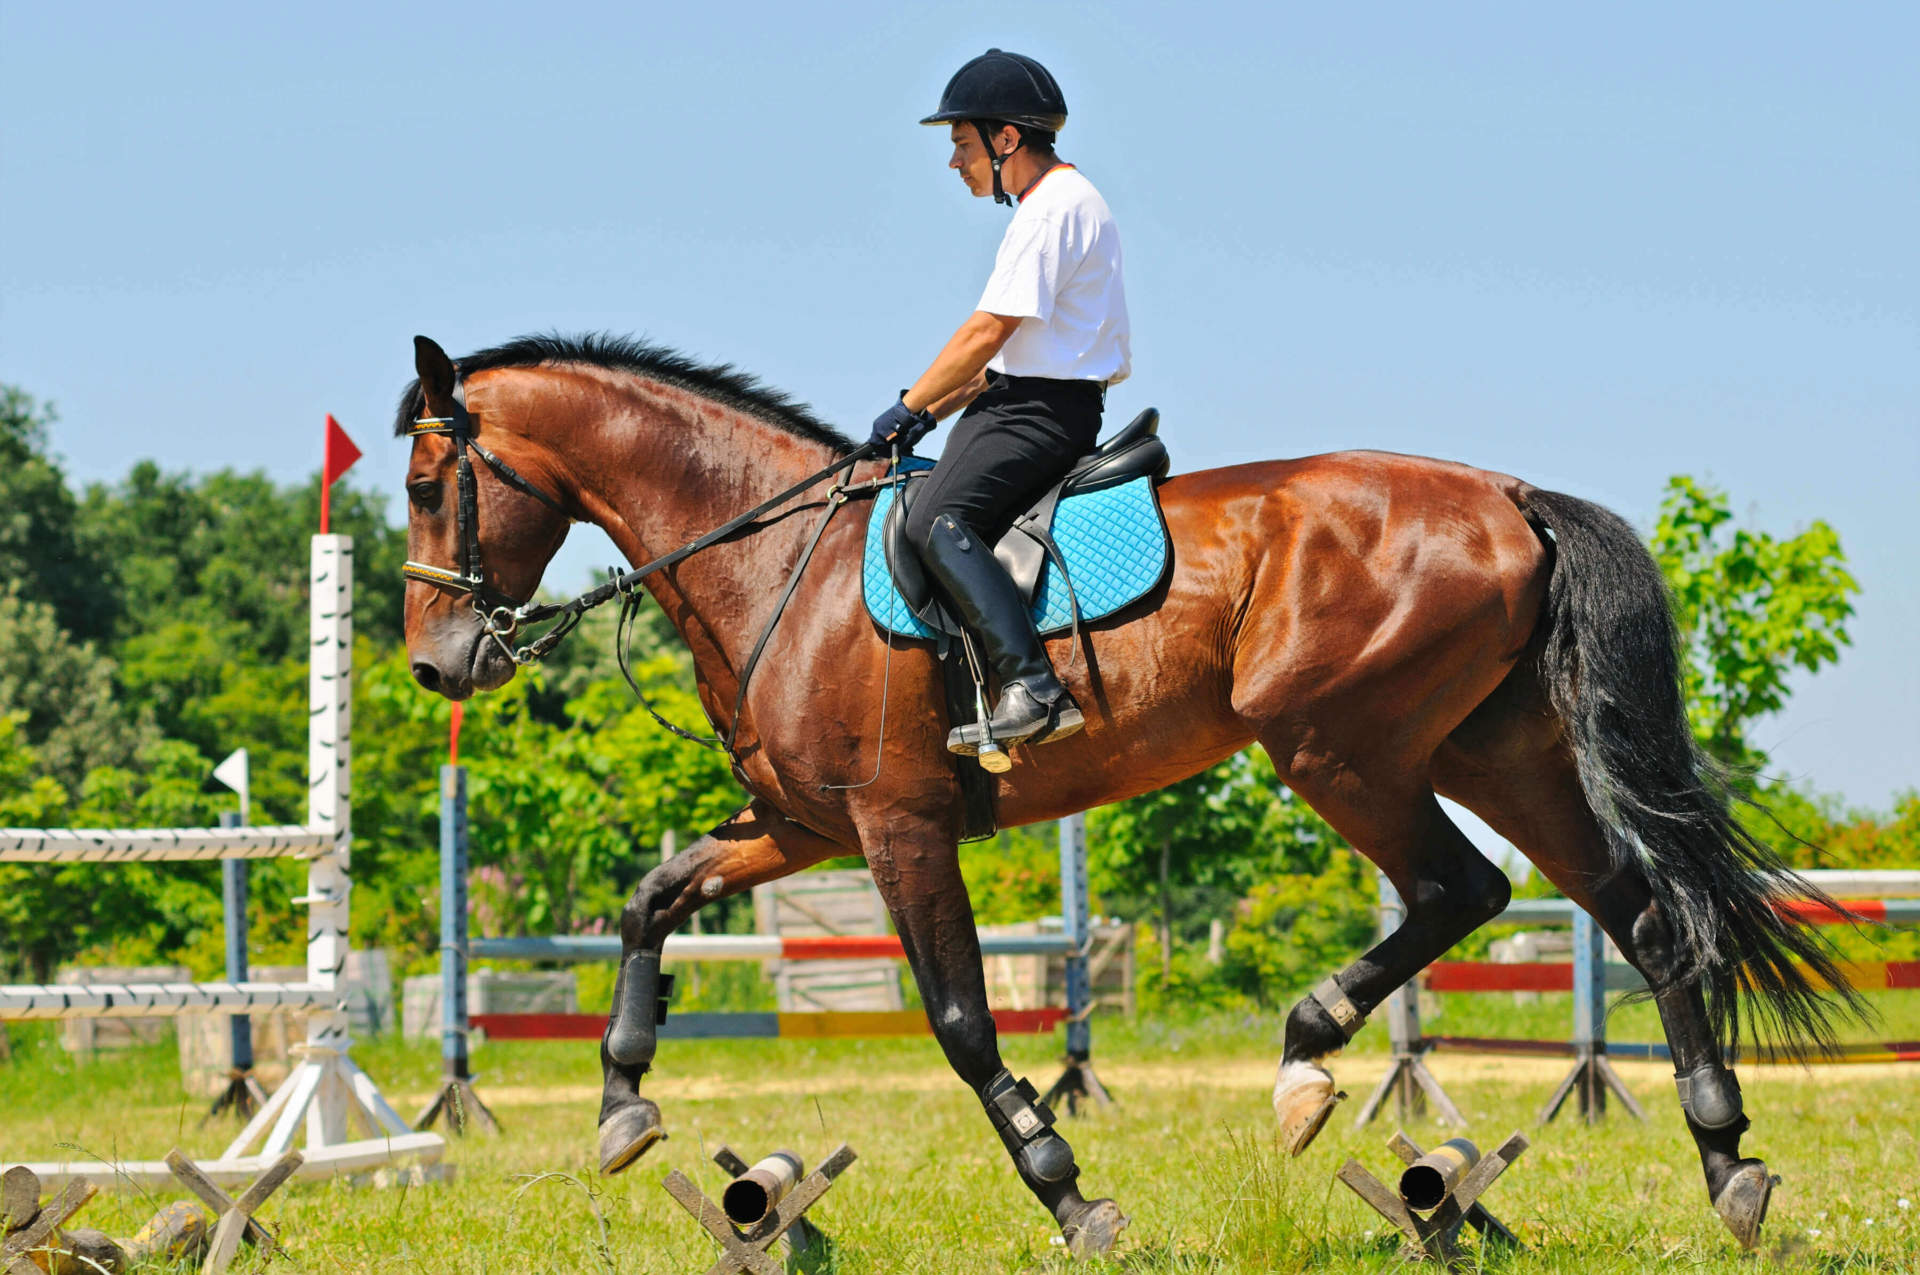 Benefits of Cross-Training Your Horse